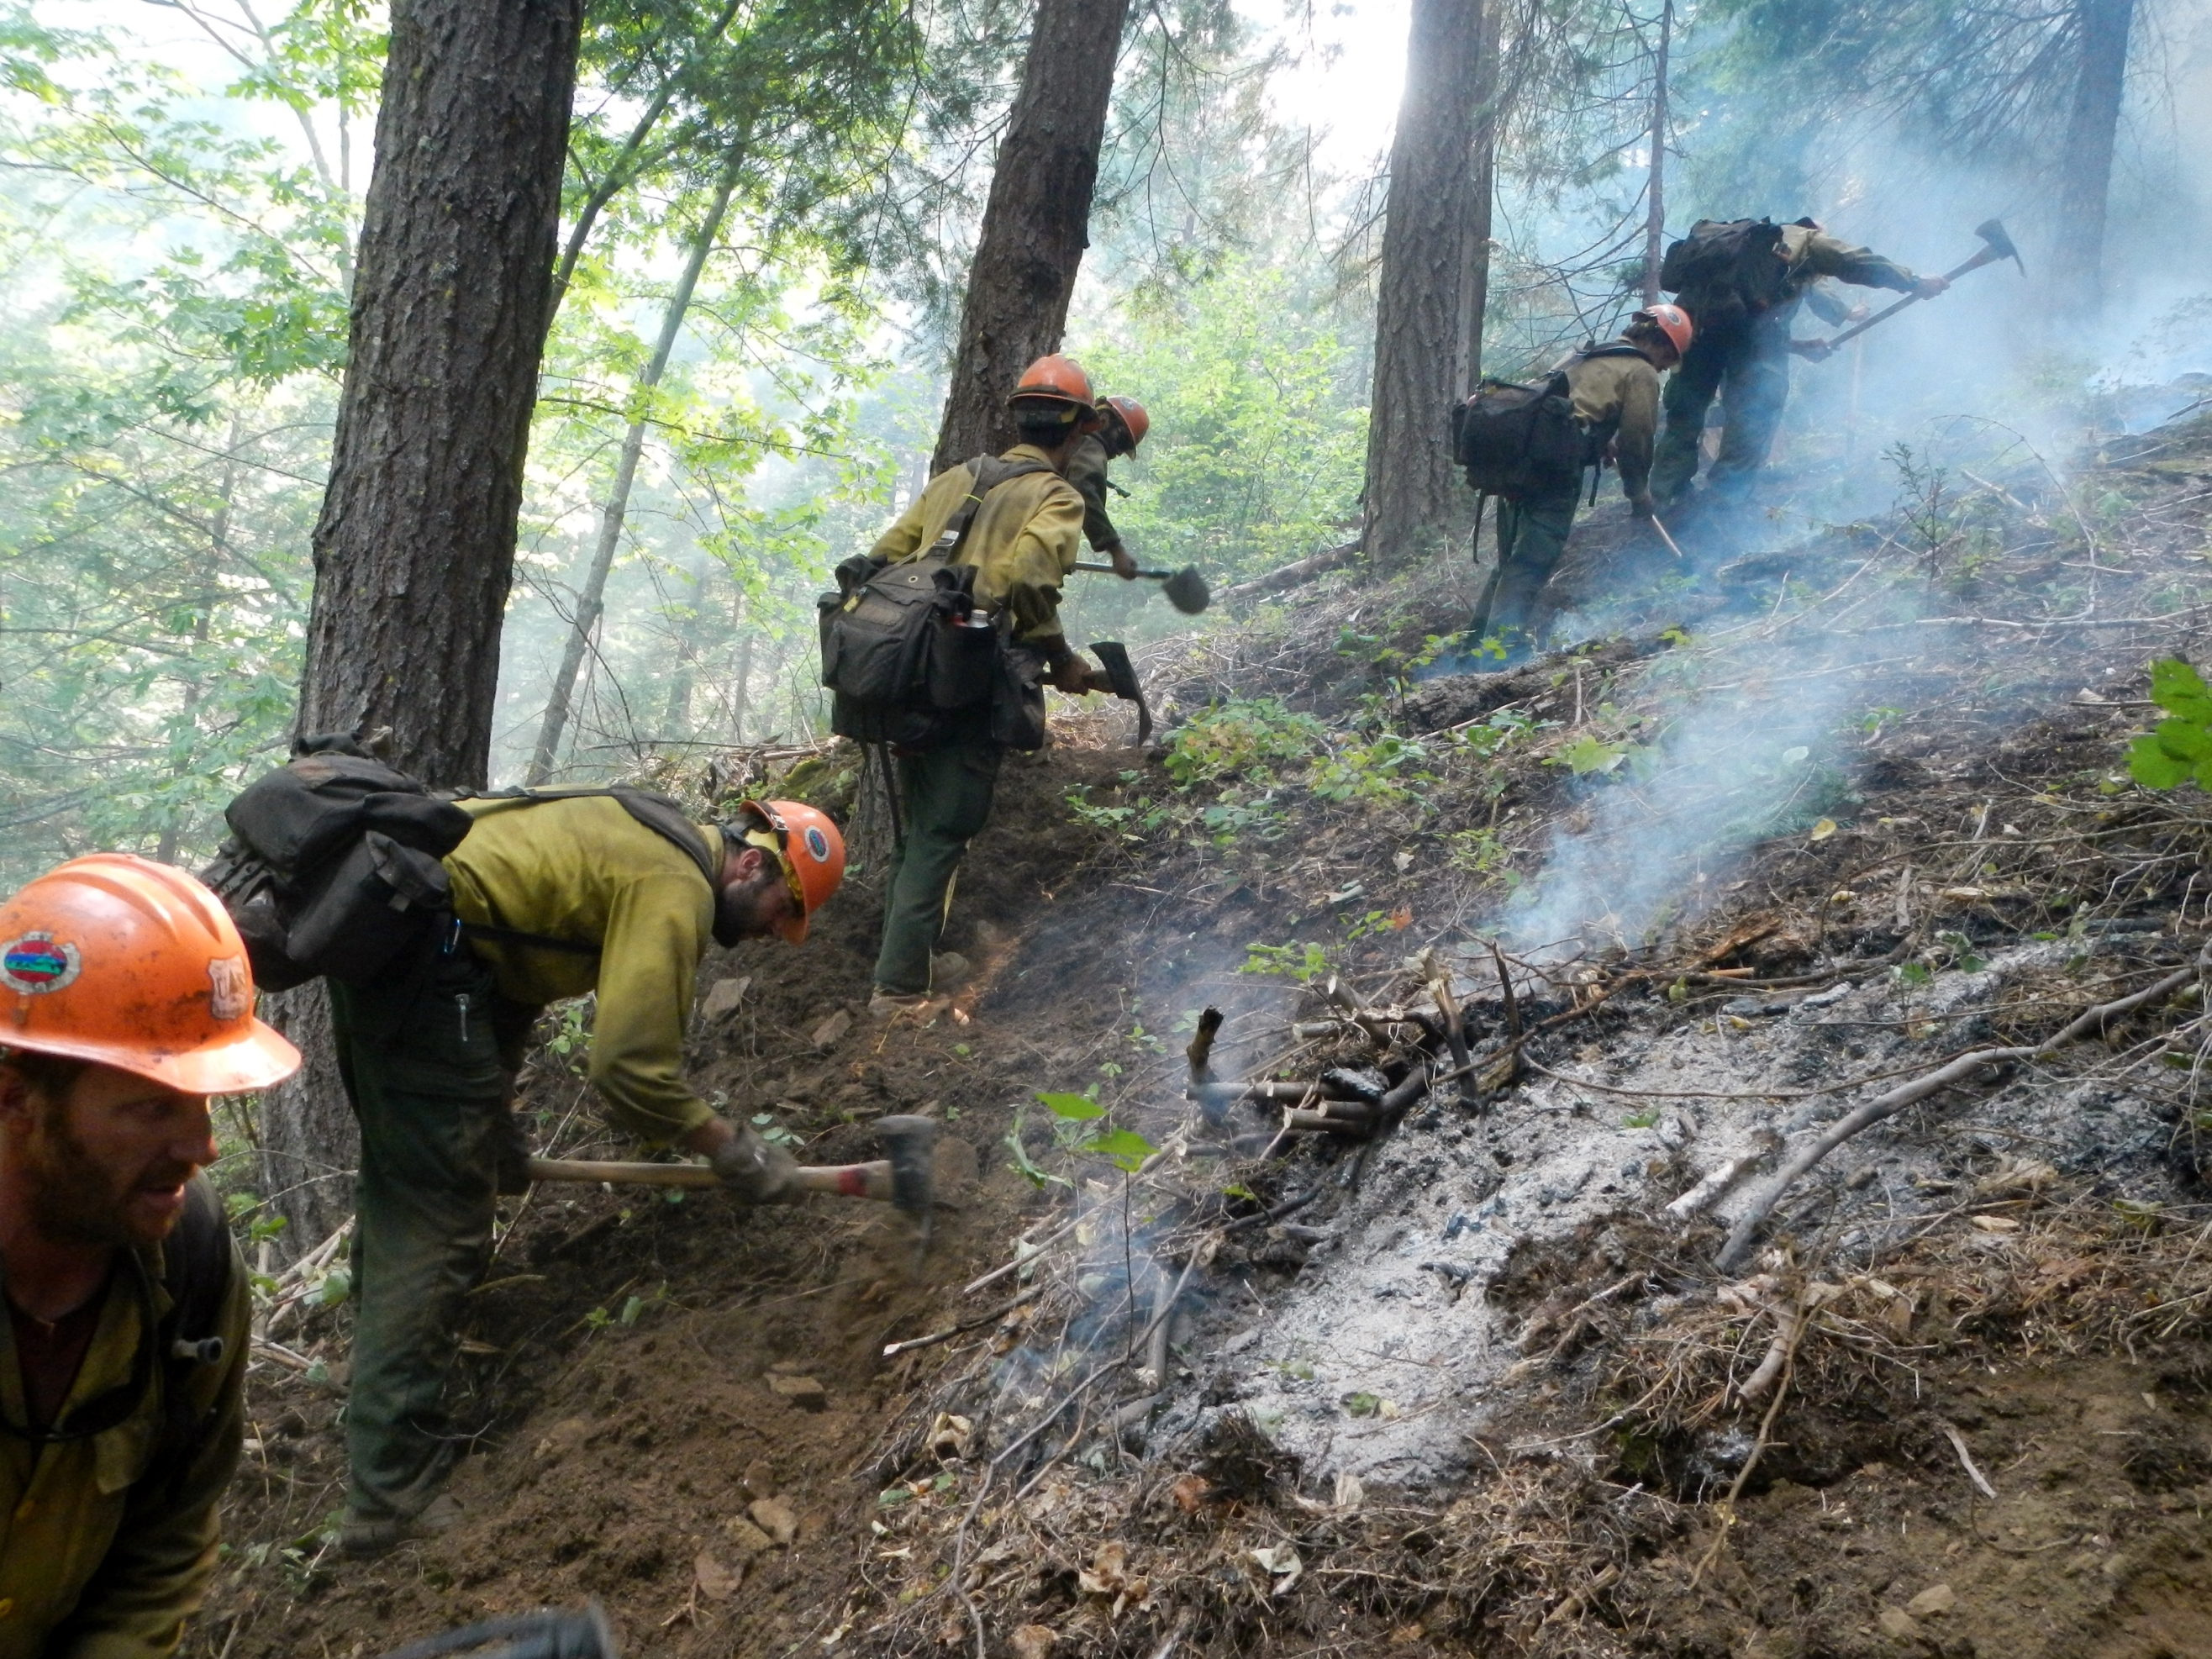 Five firefighters with hand tools dig line up a smoldering steep mountainside.